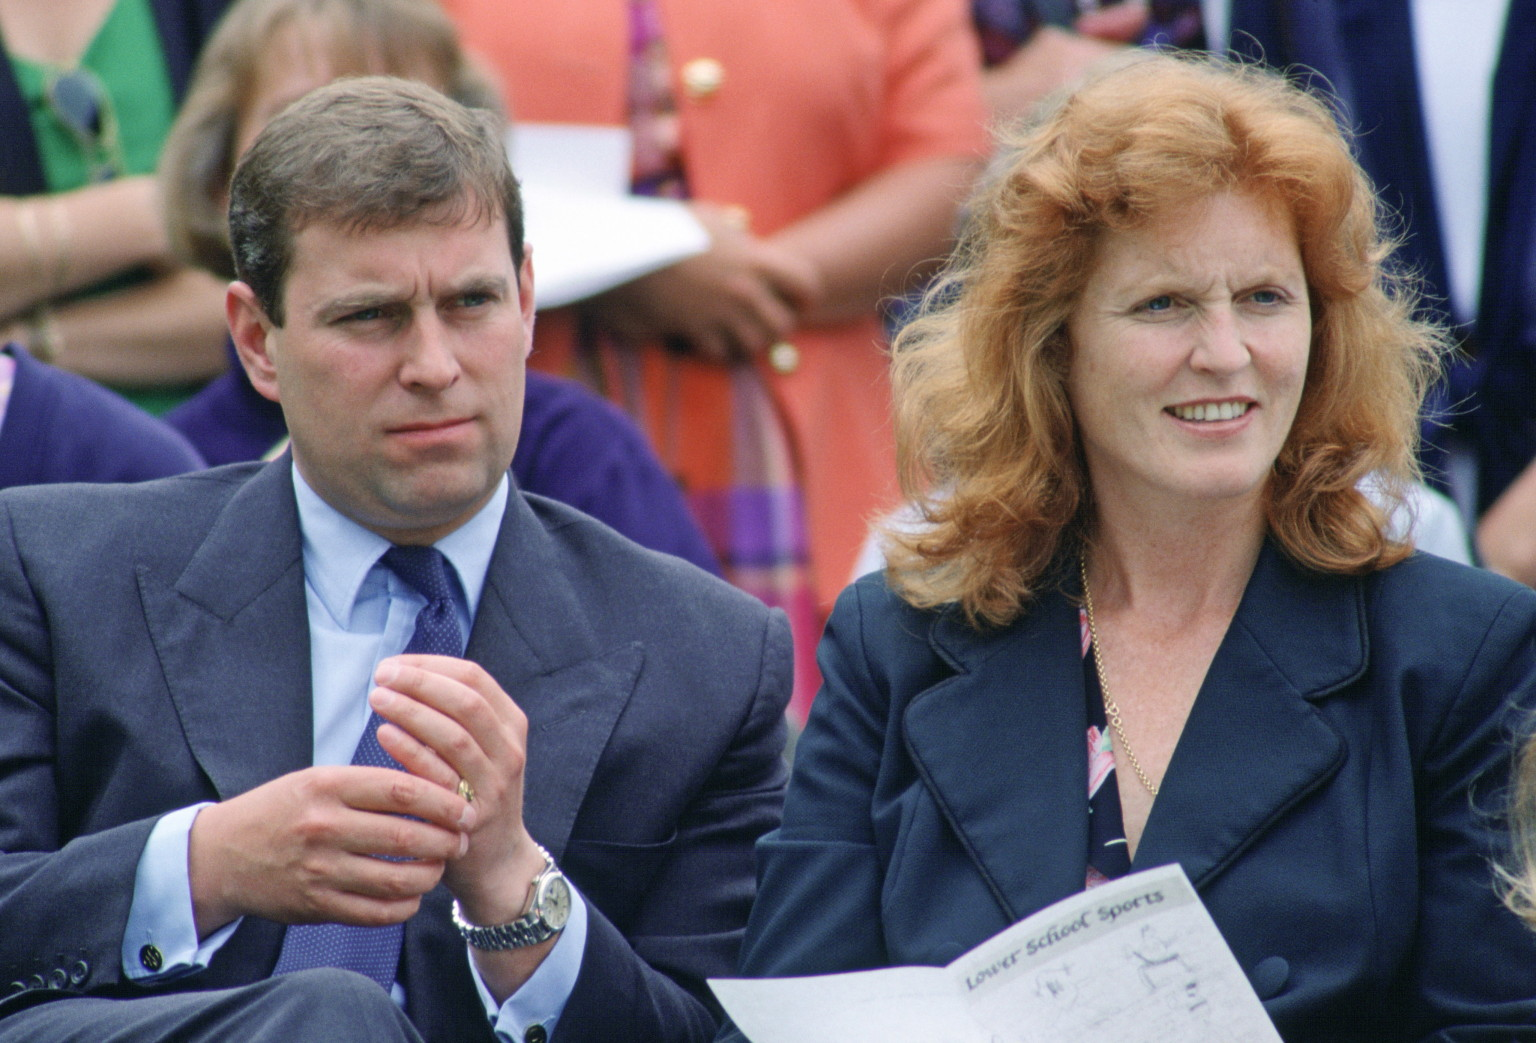 Fergie Prince Andrew Getting Back Together Sources Say The Couple Will Remarry